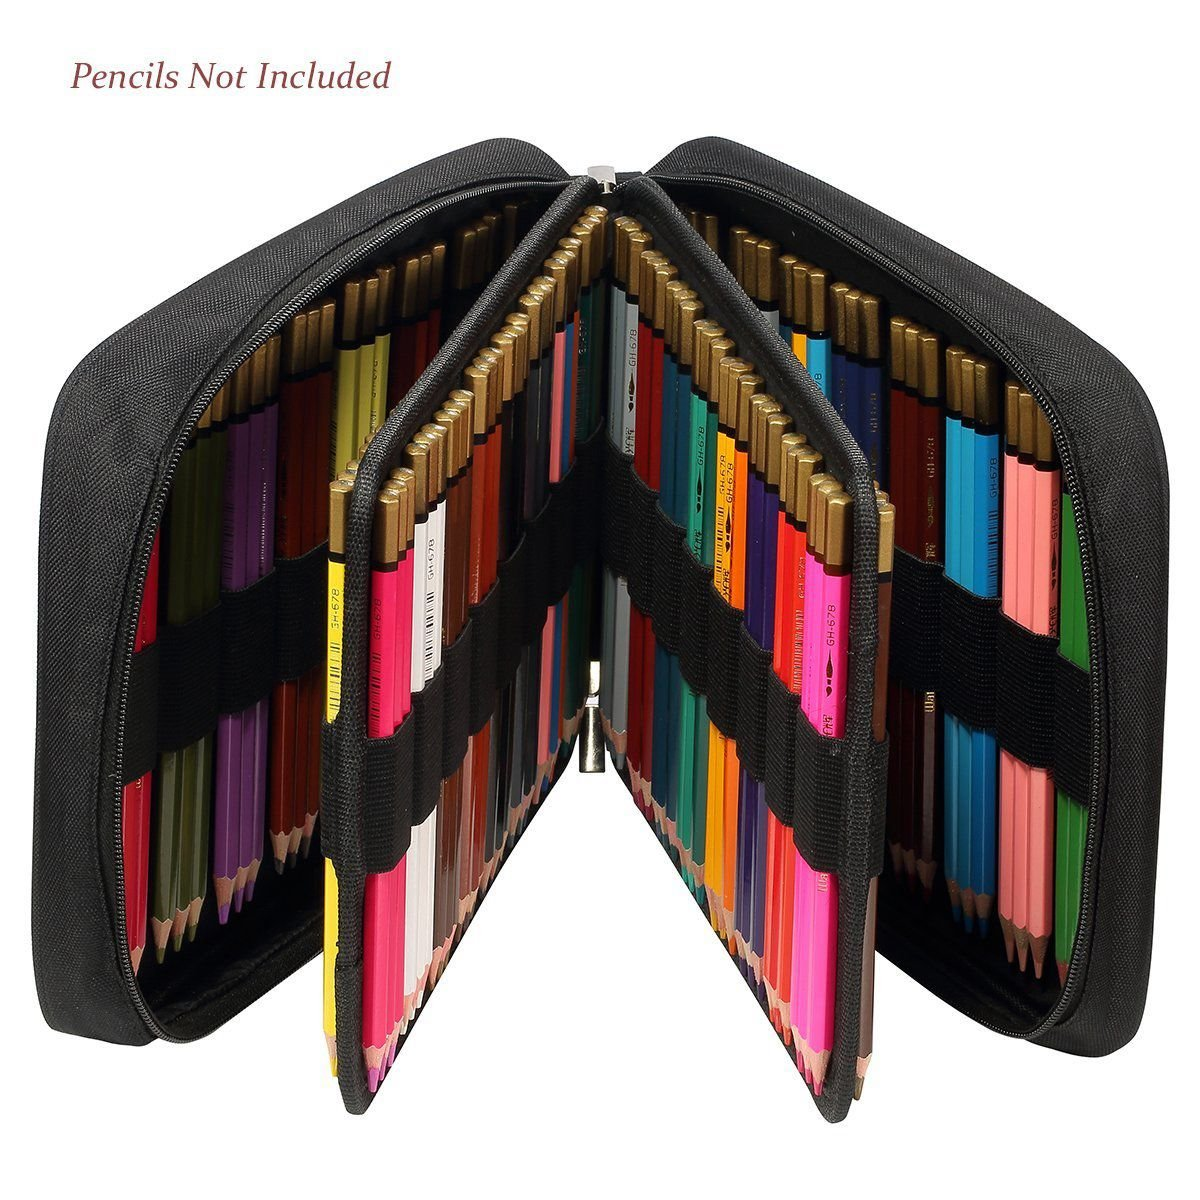 Nrpfell 150 Slots Colored Pencils Universal Pencil Bag Pen Case School Stationery PencilCase Drawing Painting Storage Pouch Pencil Box (Black) by Nrpfell (Image #3)